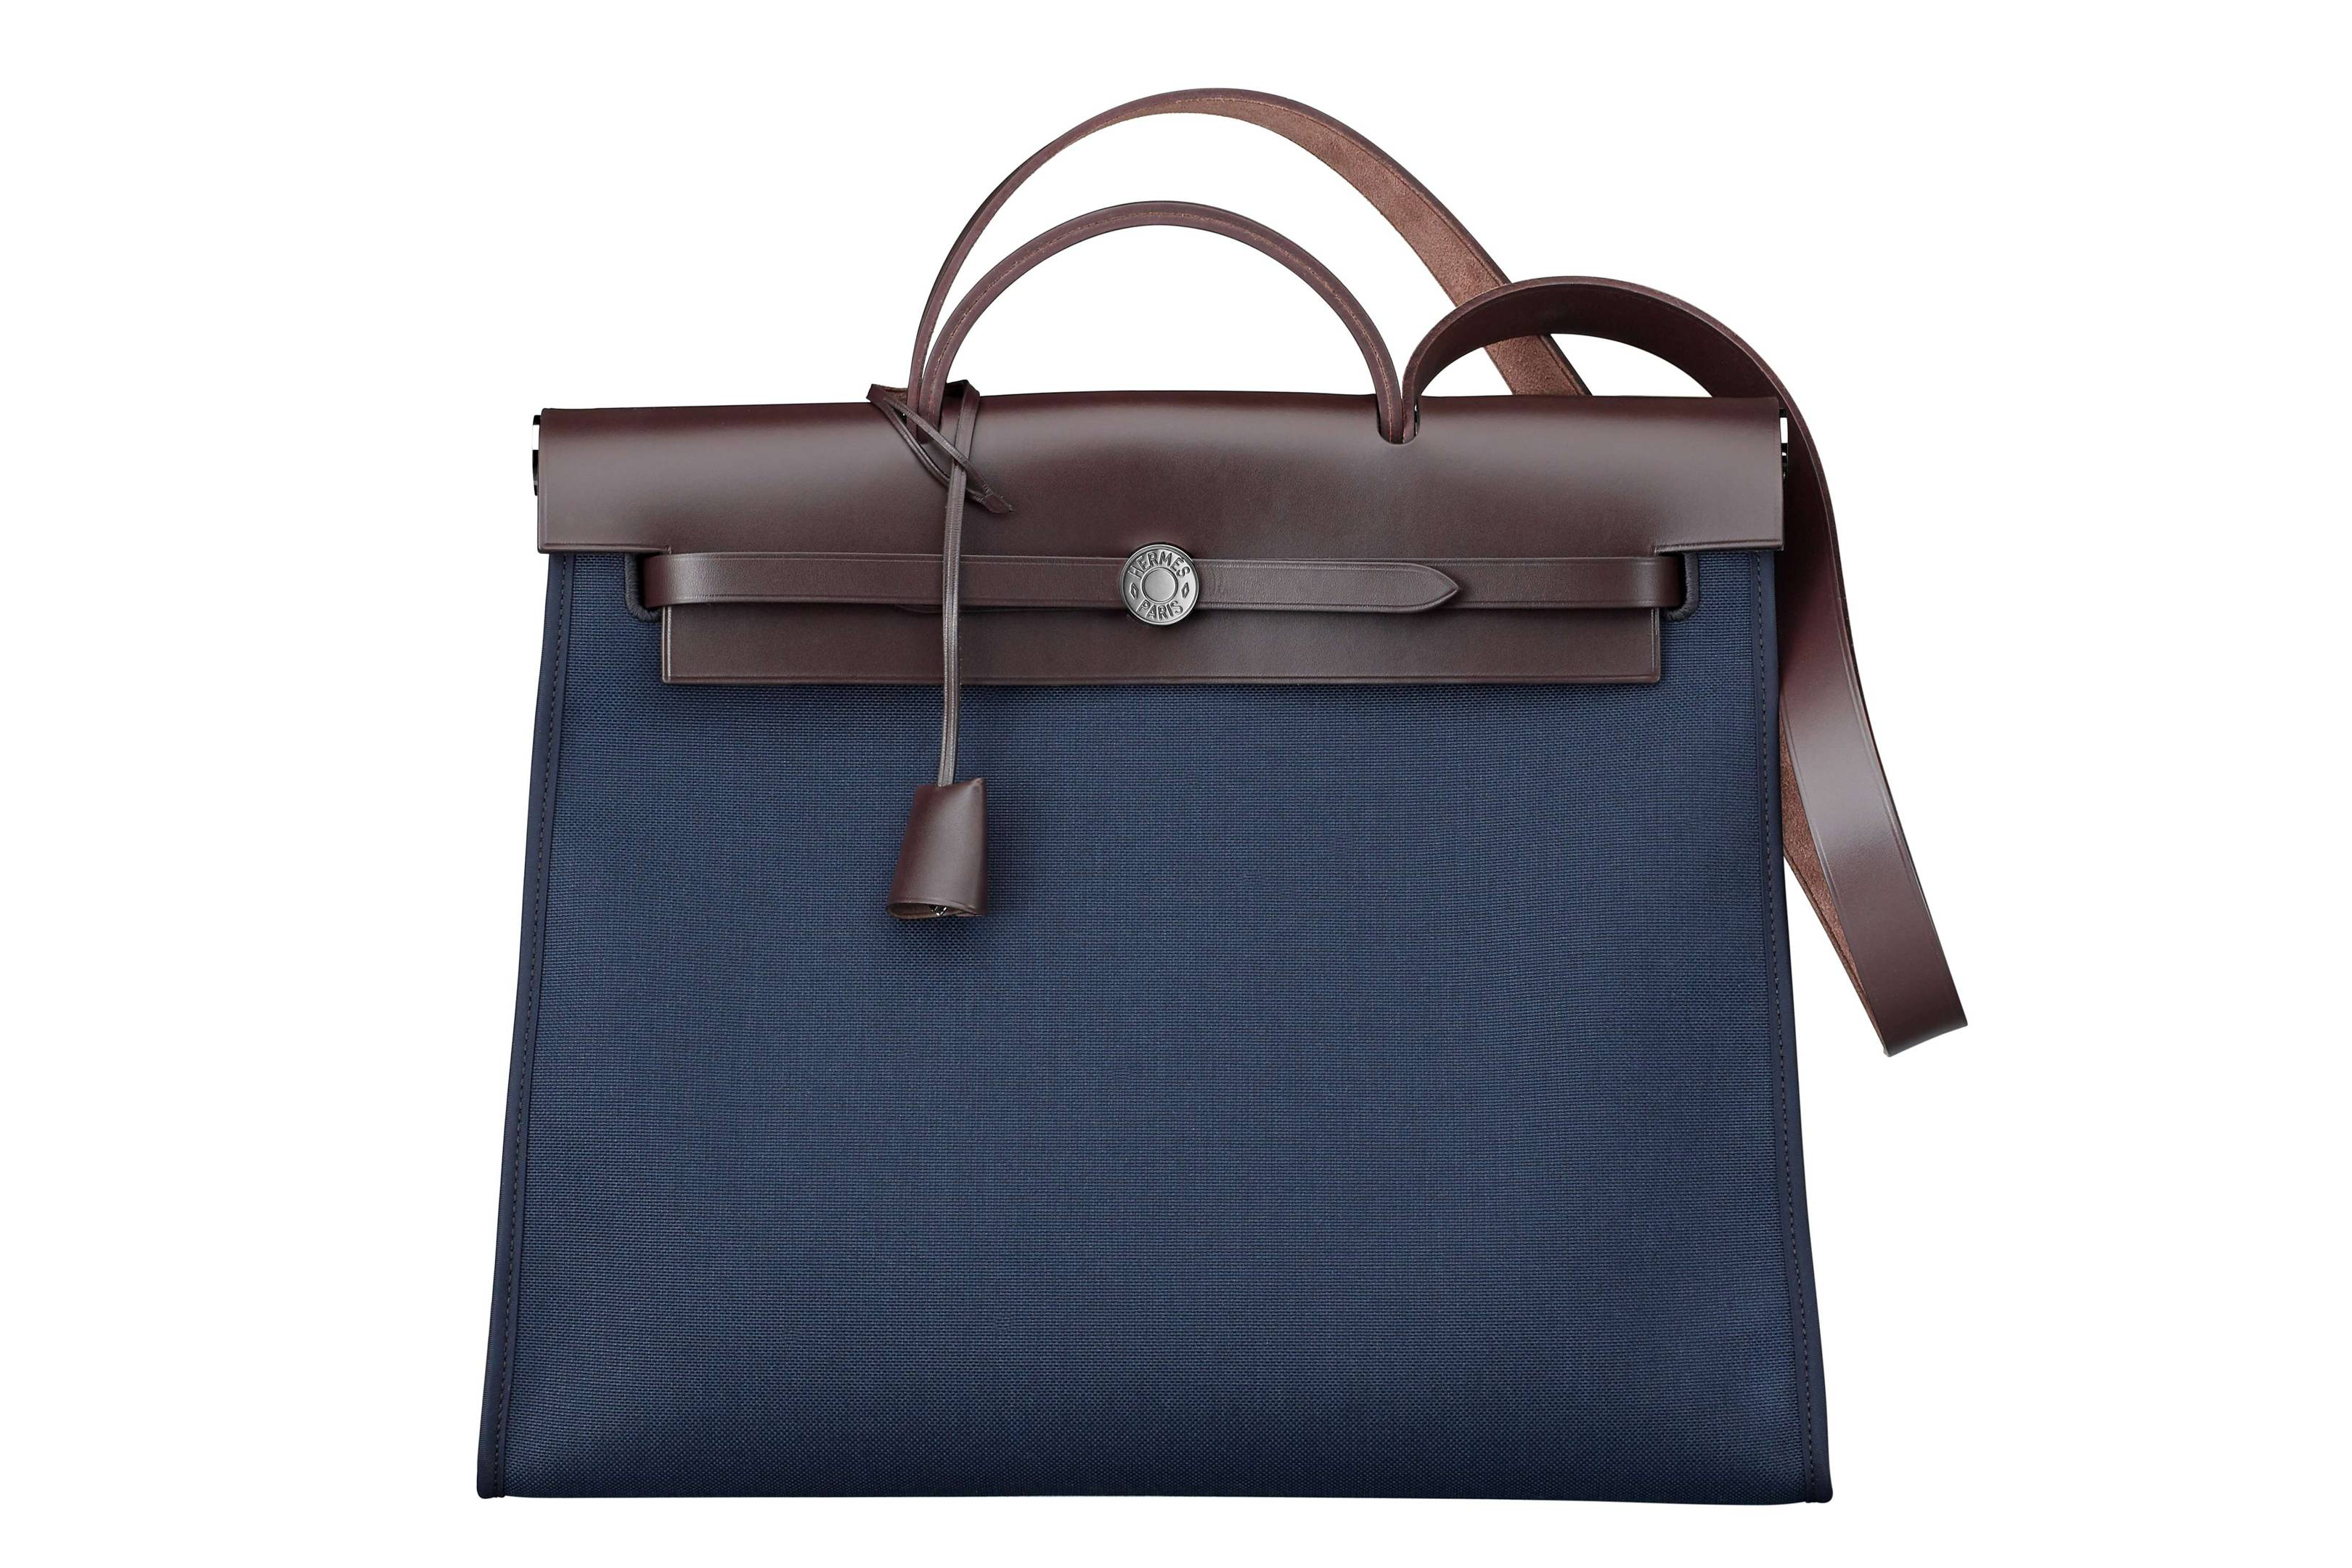 The Hermès Bag - The Most Famous Styles  3431ecd8c26ef